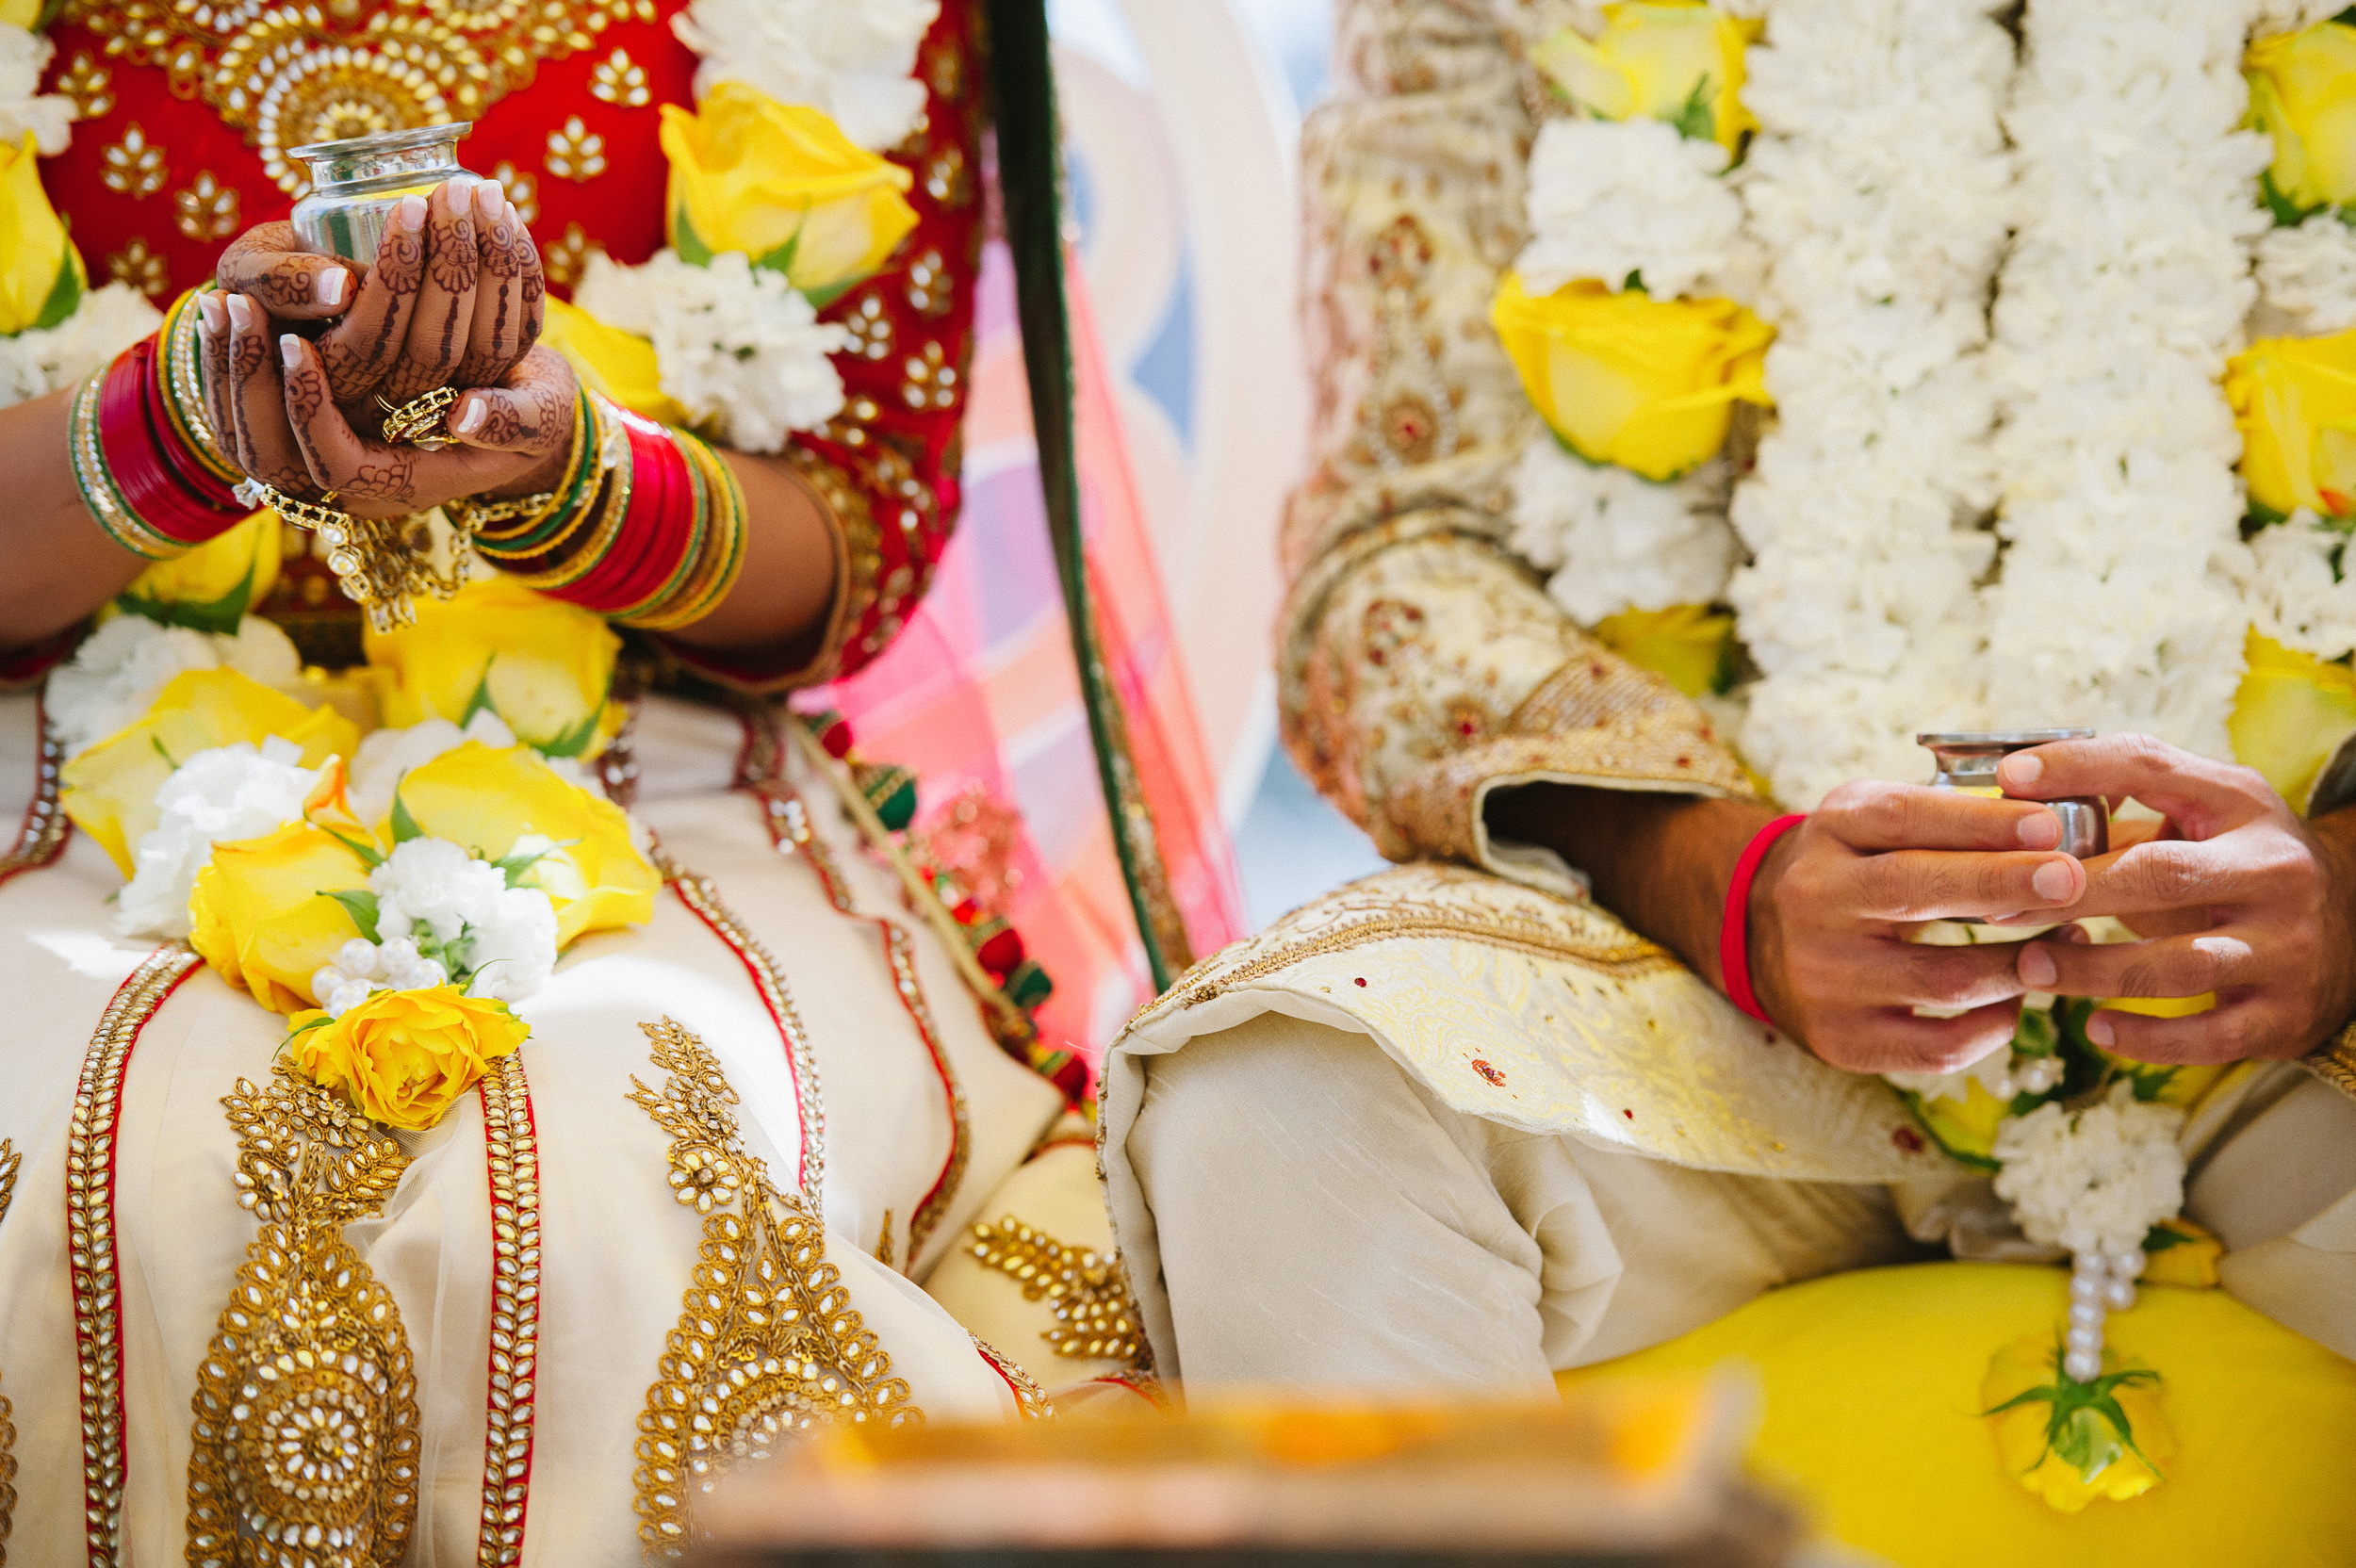 HANDS AT HINDU CEREMONY